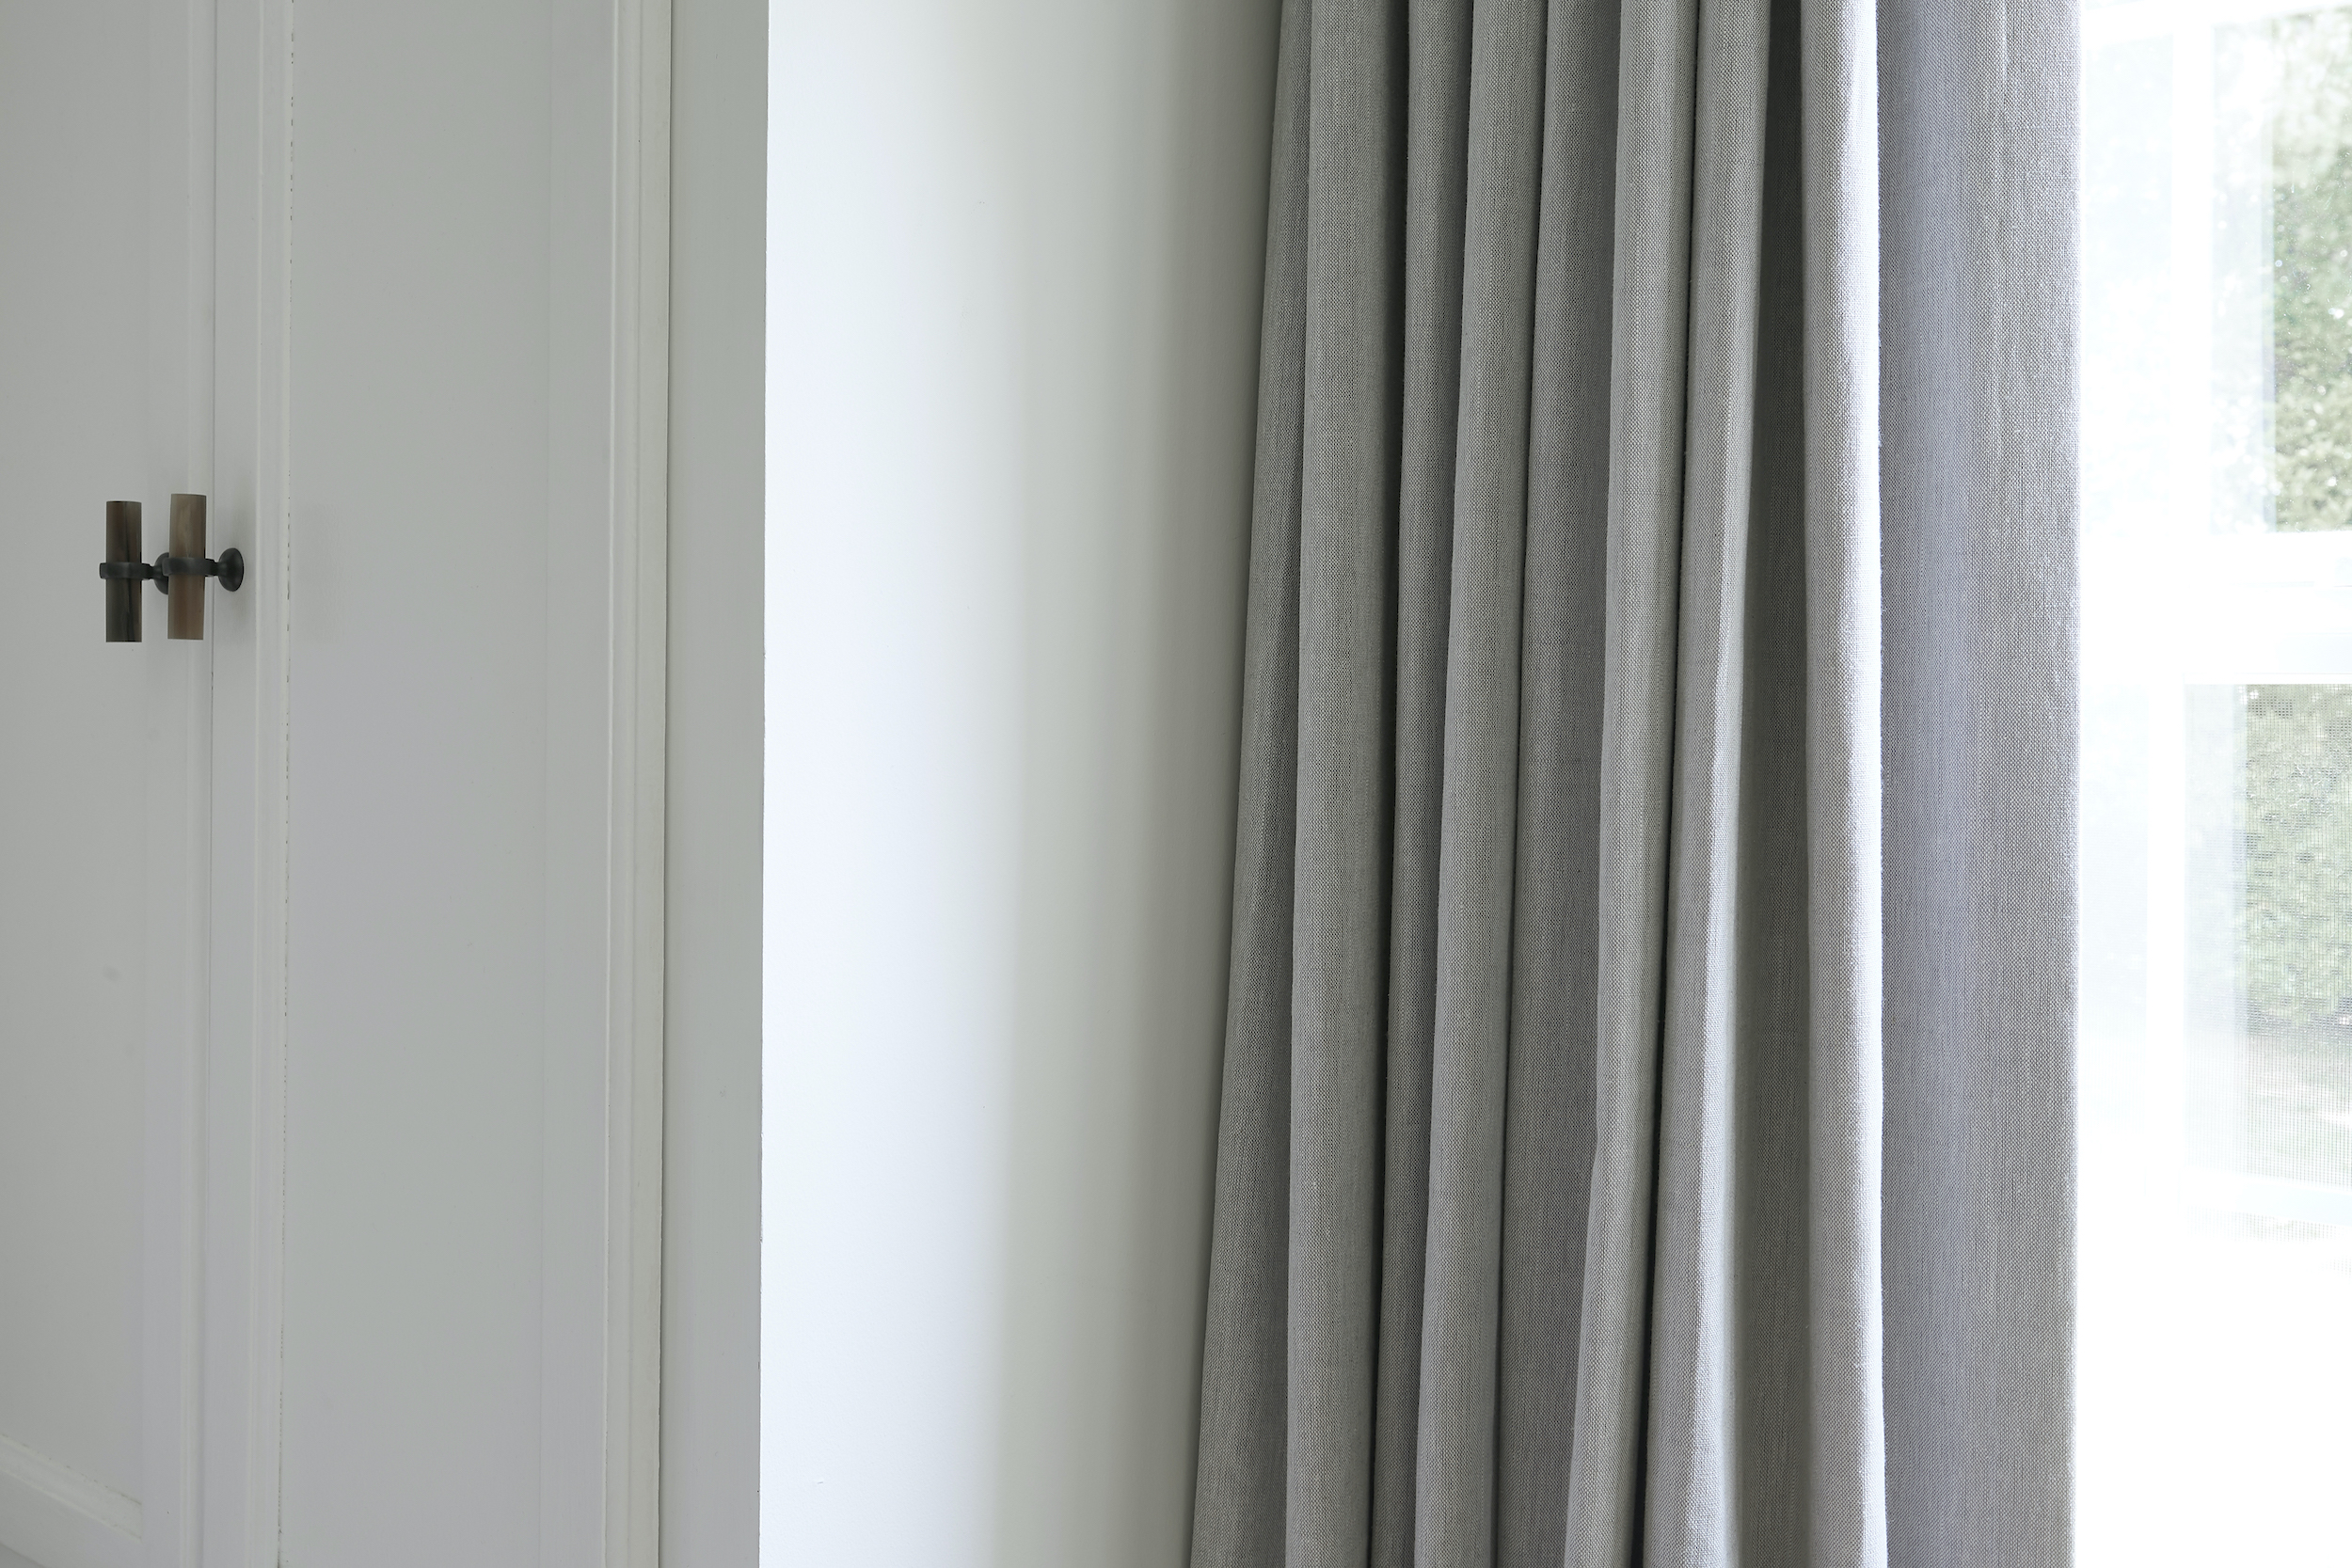 These flint-gray linen curtains, open & folded, shows how elegant & airy drapery fabric can be.